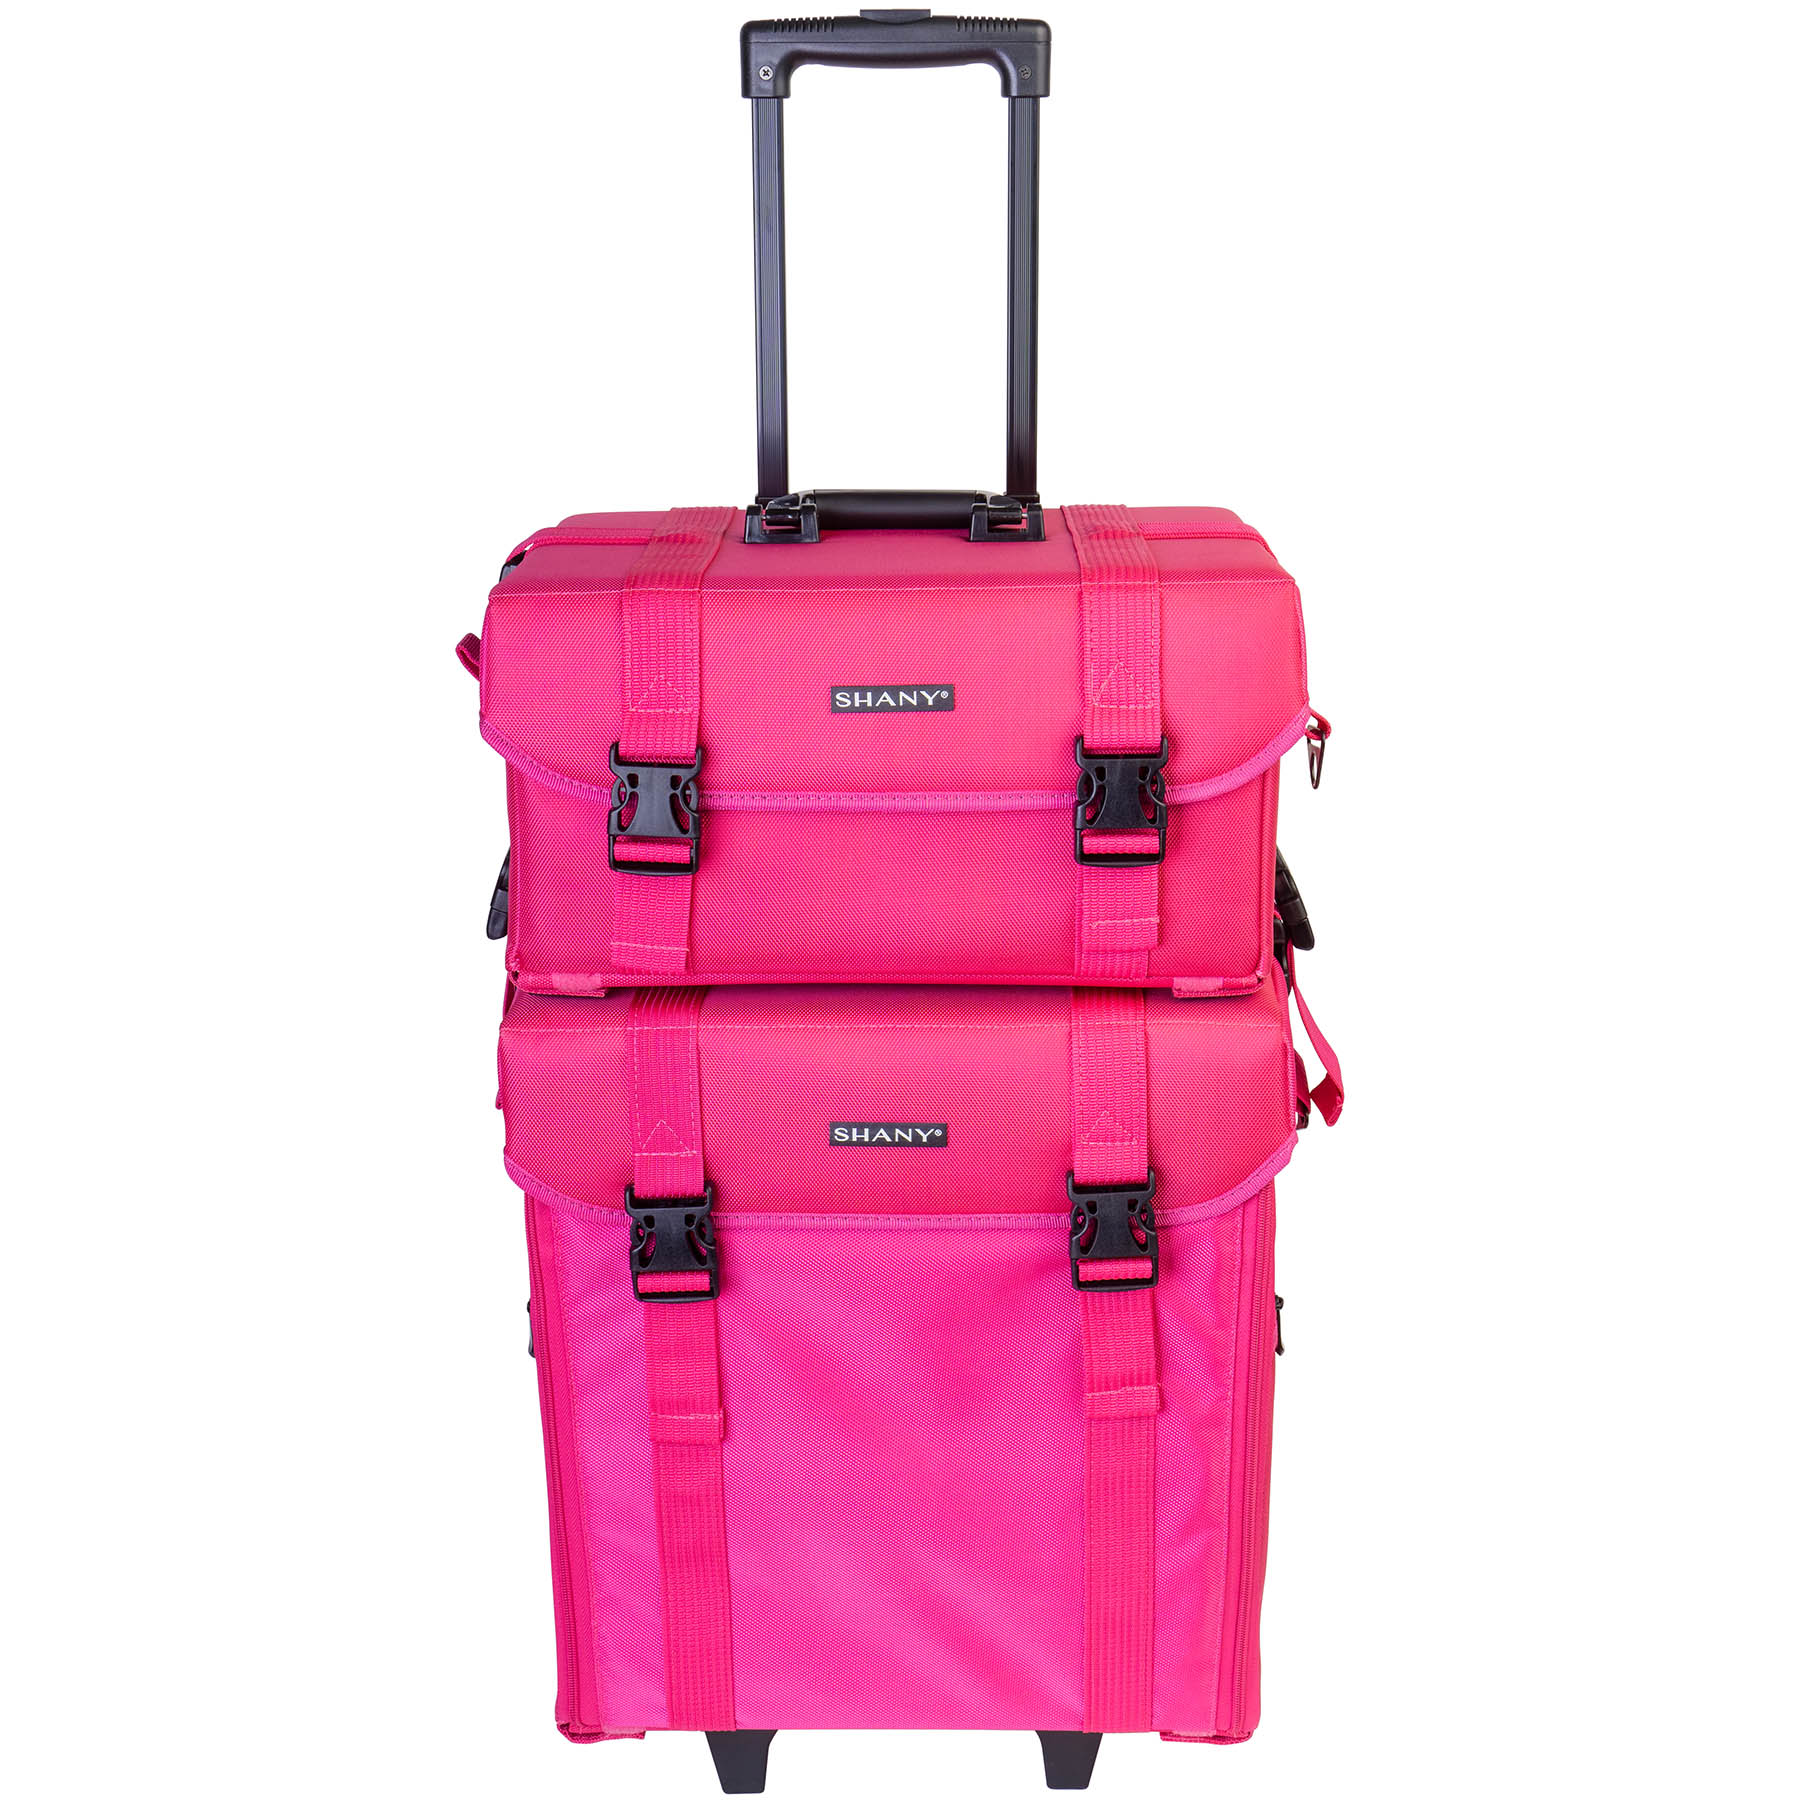 e3d7e2841d23 Details about SHANY Soft Makeup Artist Rolling Trolley Cosmetic Case with  Free Set of Mesh Bag